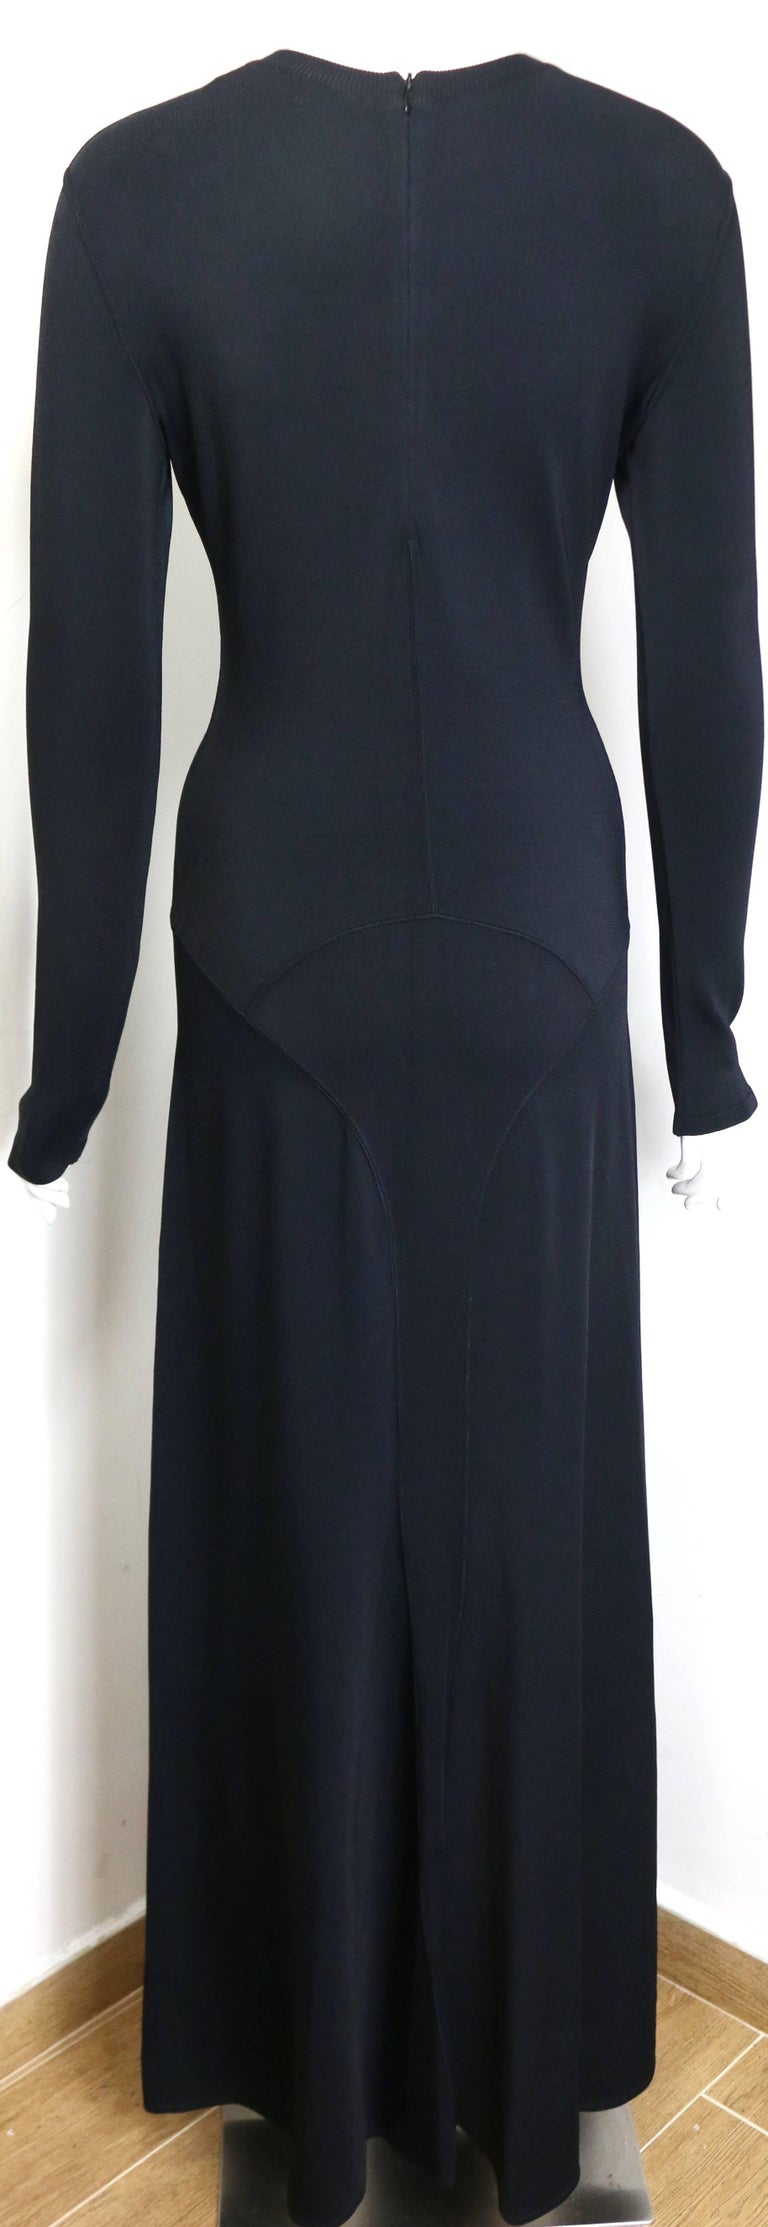 Alaia Black Long Sleeves BodyCon Maxi Dress  In New never worn Condition For Sale In Sheung Wan, HK